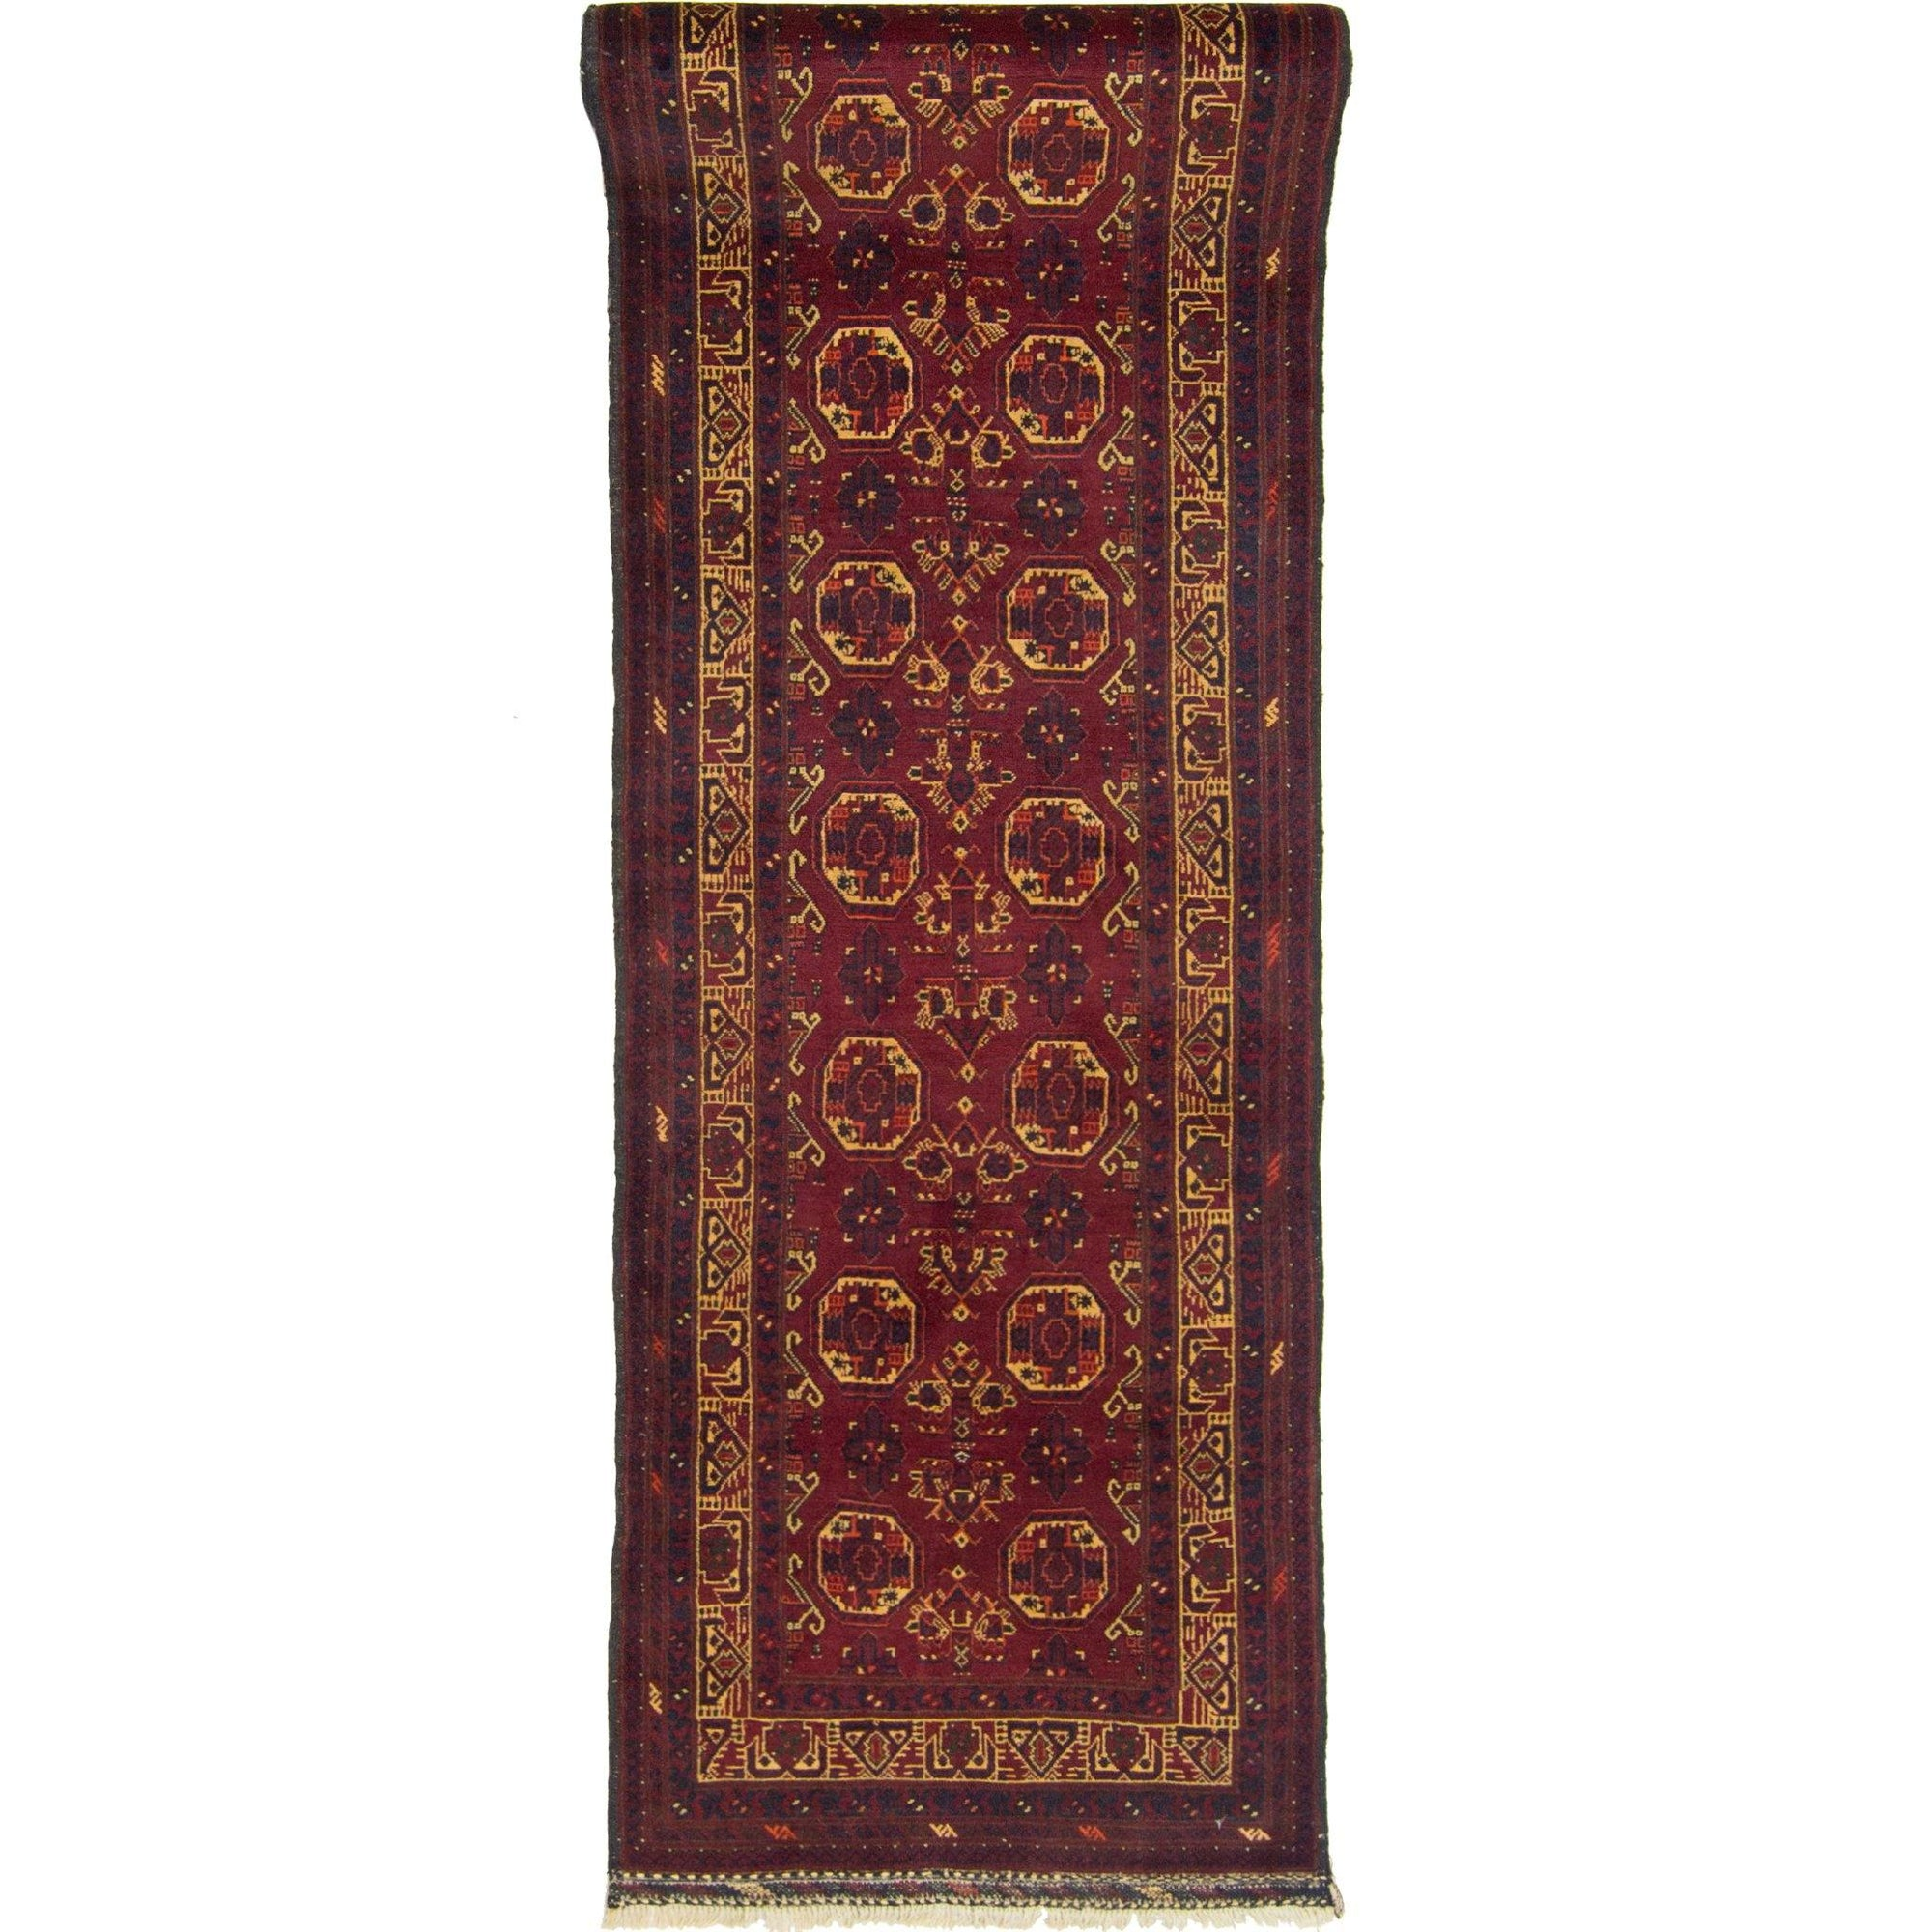 Fine Hand-knotted 100% Wool Afghani Turkmen Runner 82cm x 379cm Persian-Rug | House-of-Haghi | NewMarket | Auckland | NZ | Handmade Persian Rugs | Hand Knotted Persian Rugs